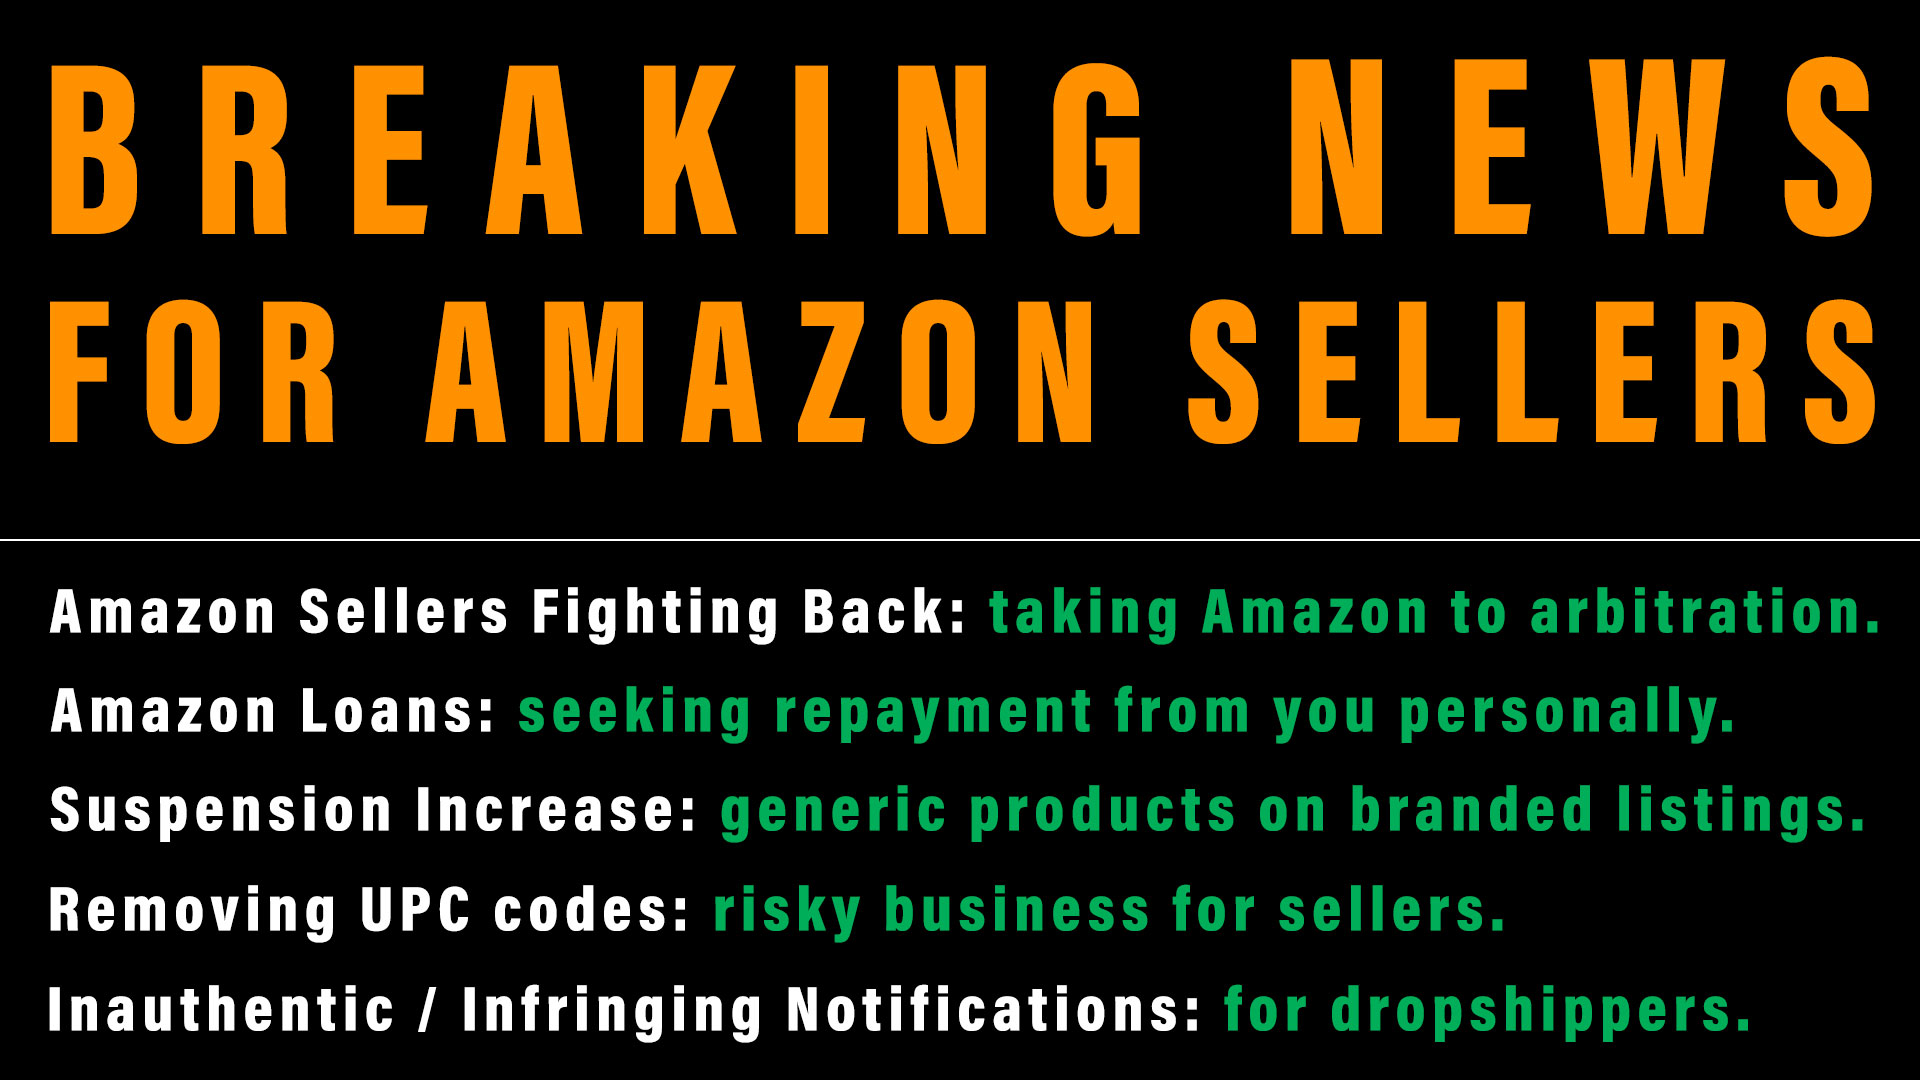 News for Amazon Sellers arbitration, loans, generic products, removing UPCs